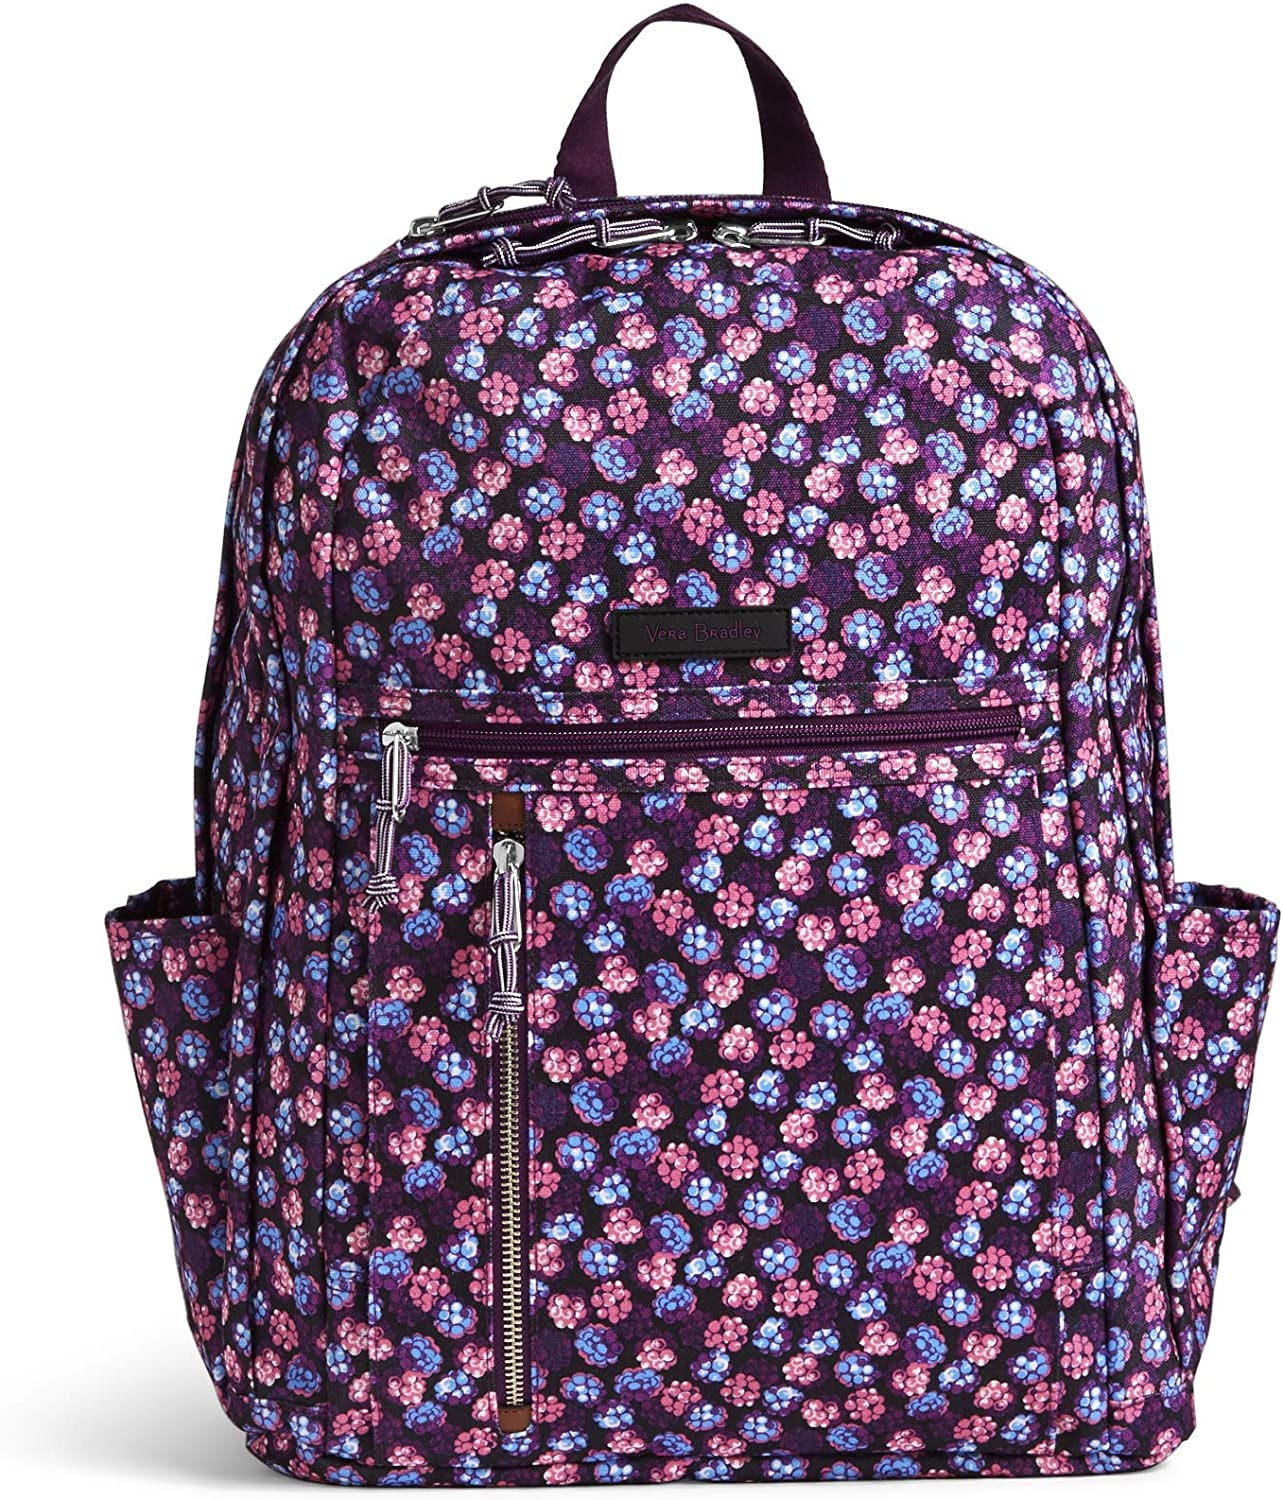 Vera Bradley Women's Lighten Up Grand Backpack